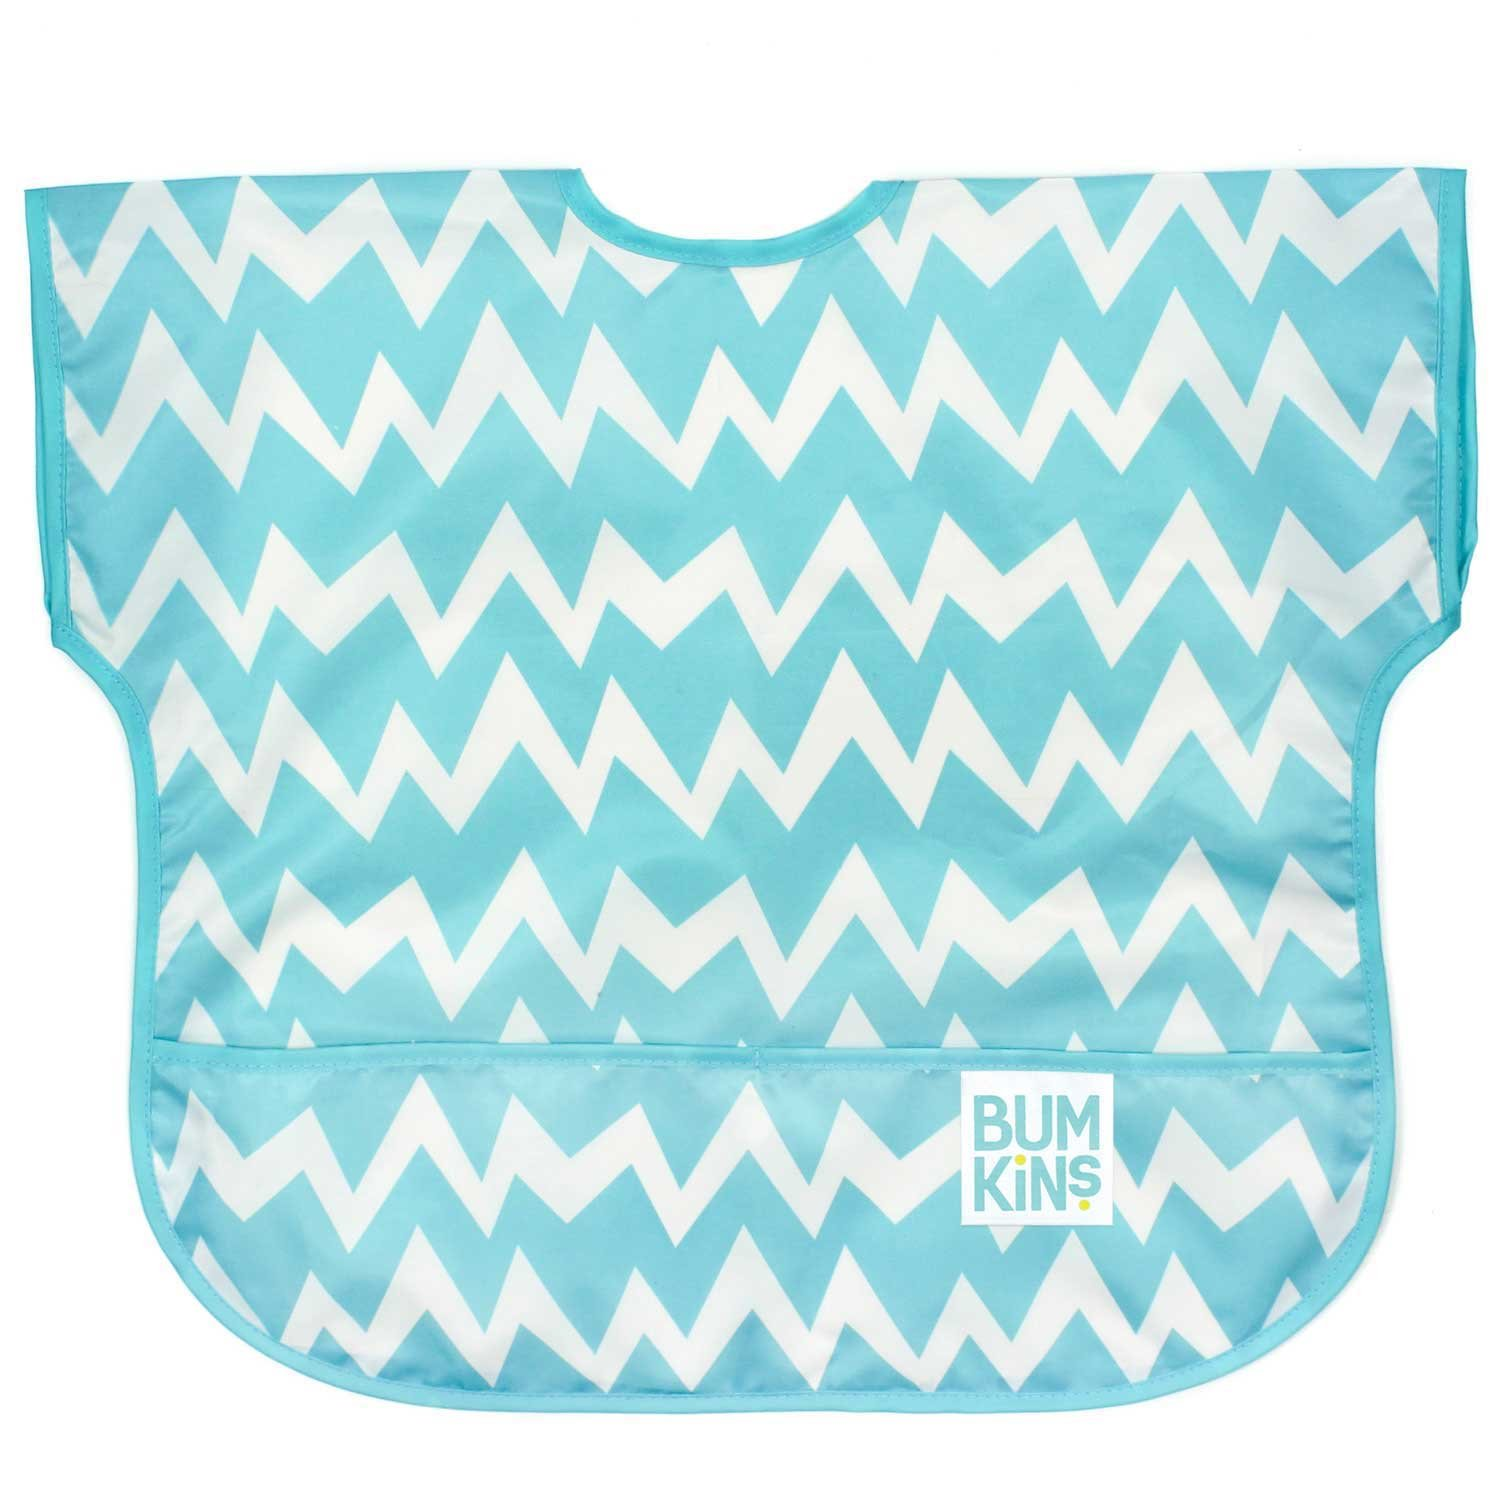 Bumkins Waterproof Junior Bib, Blue Chevron (1-3 Years) by Bumkins